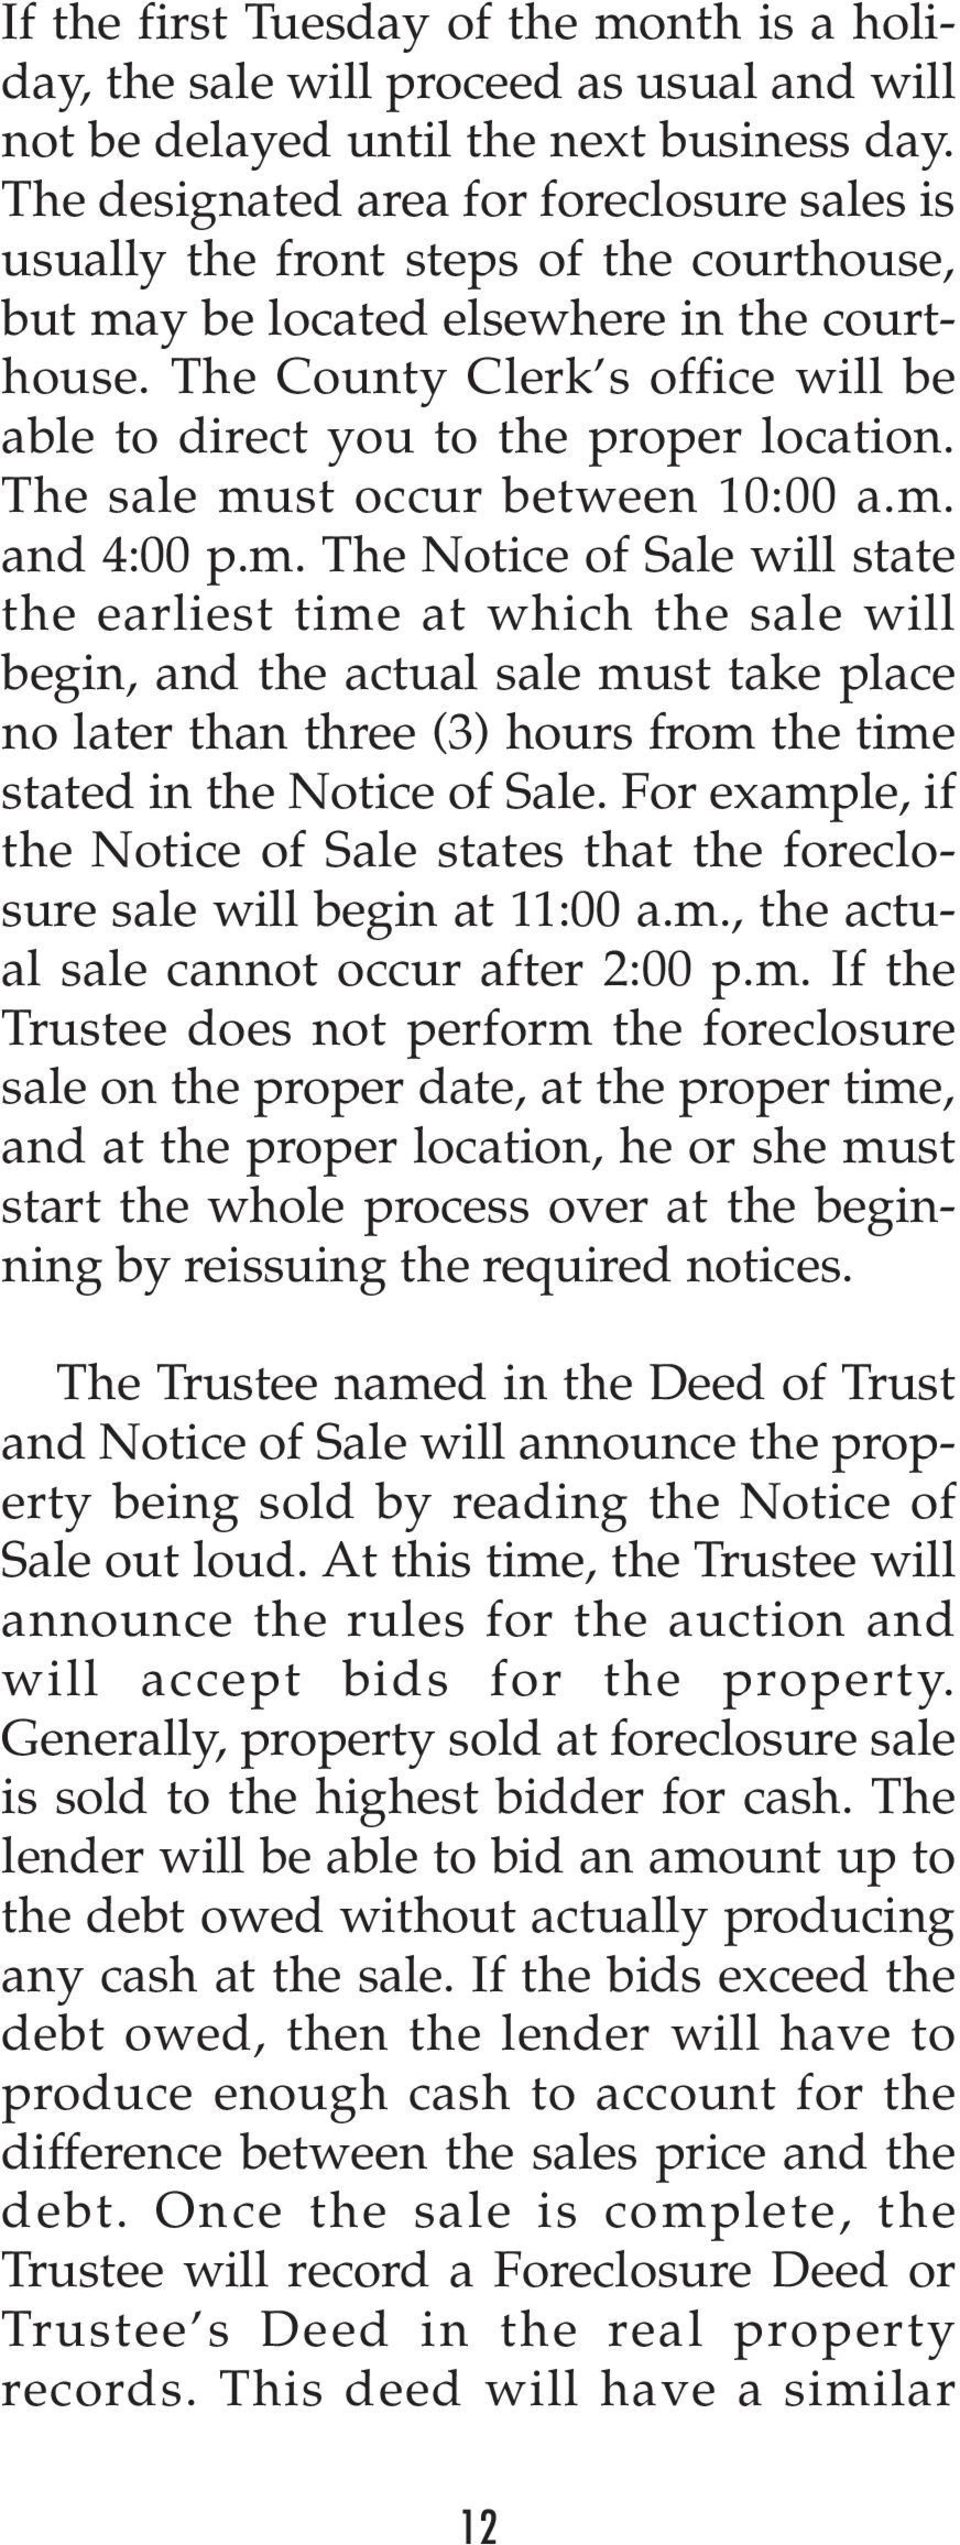 The County Clerk s office will be able to direct you to the proper location. The sale mu